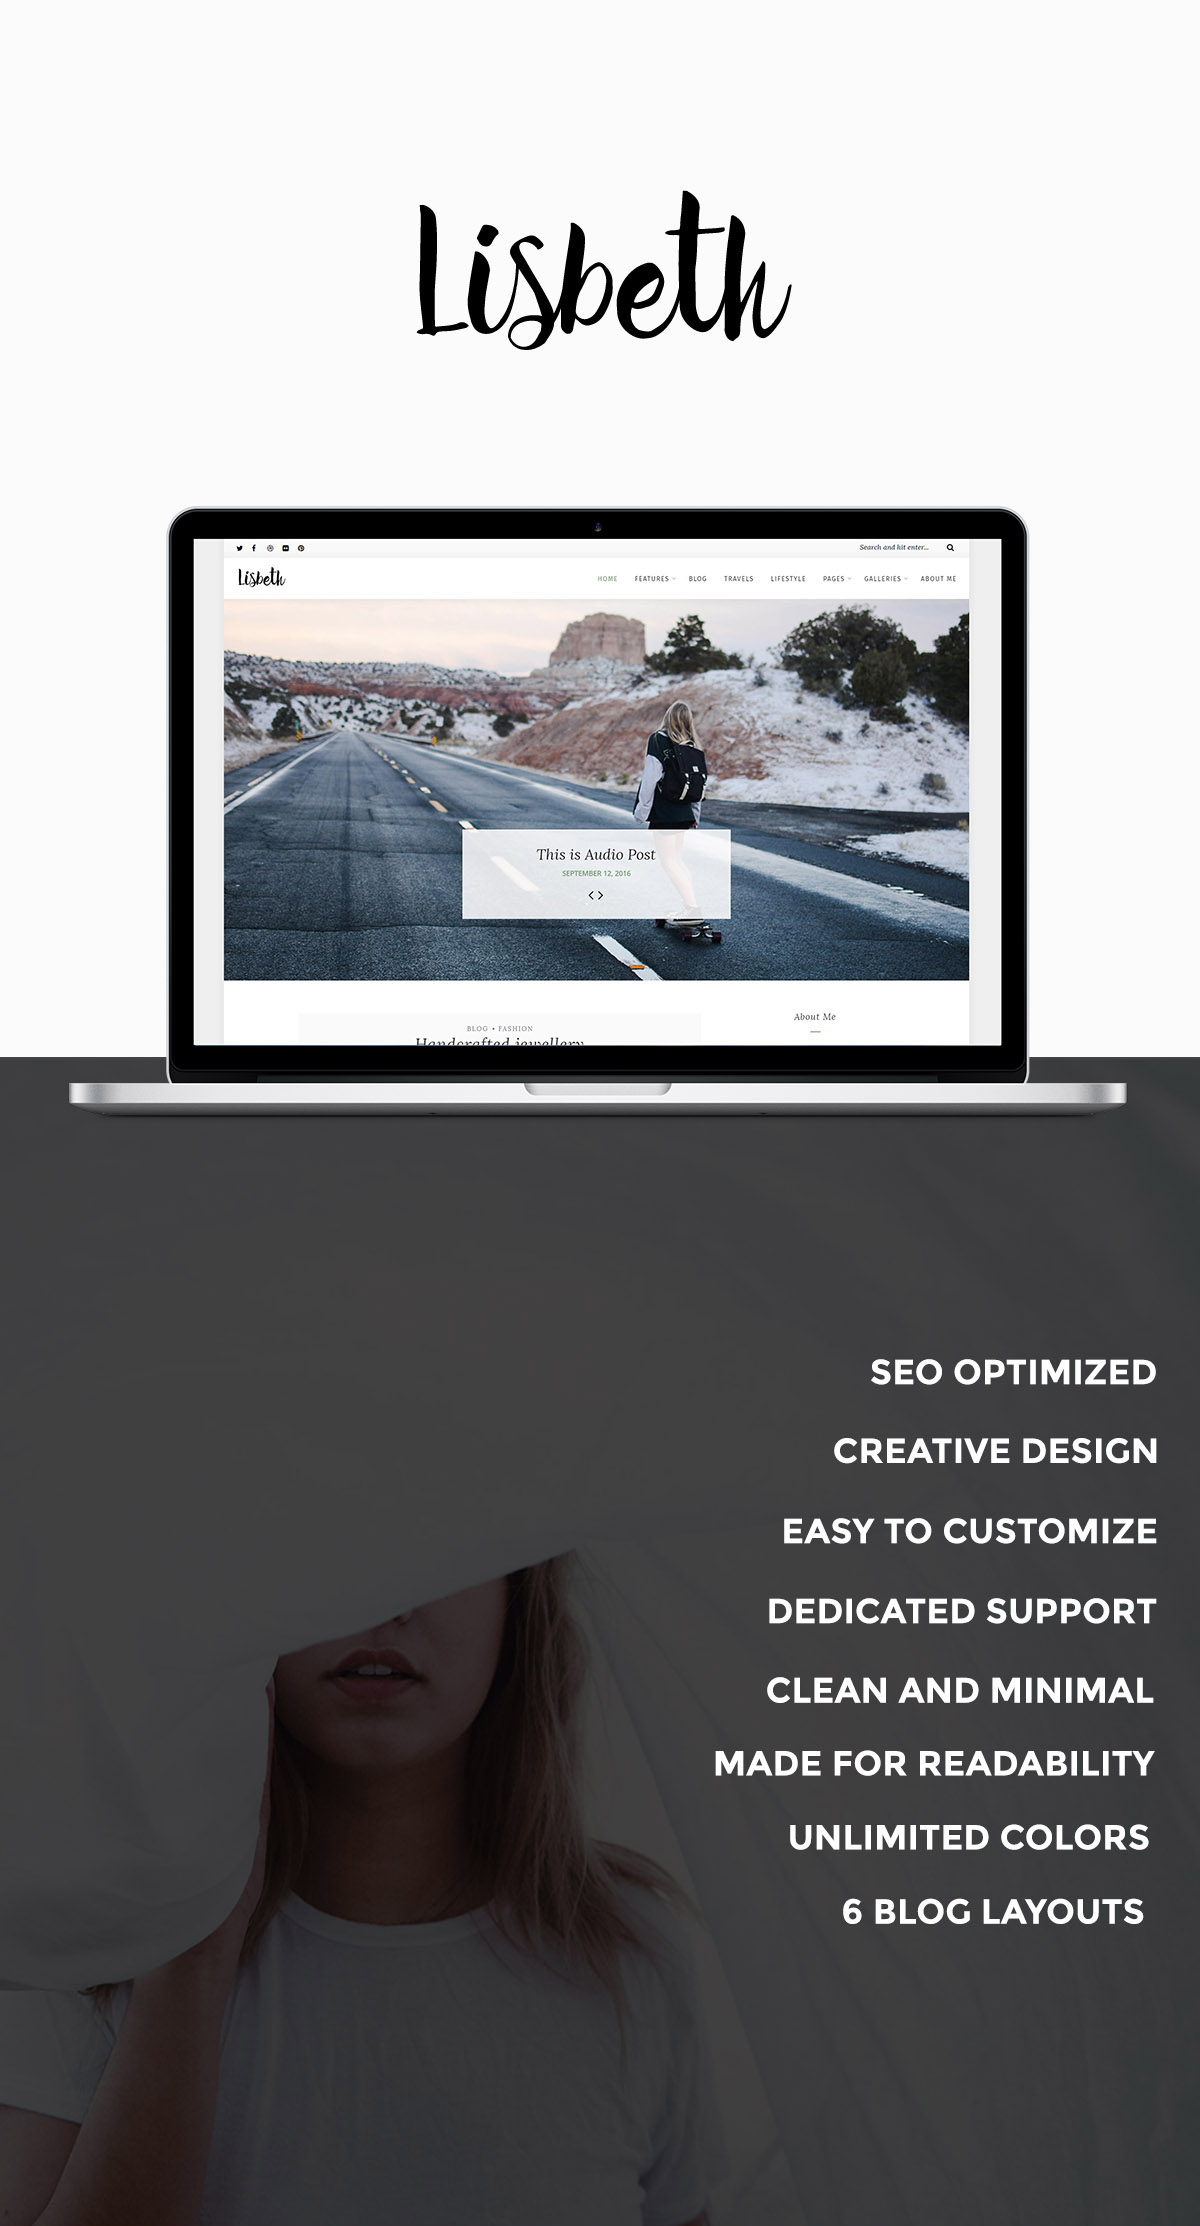 WordPress theme Lisbeth - A Lifestyle Responsive WordPress Blog Theme (Personal)